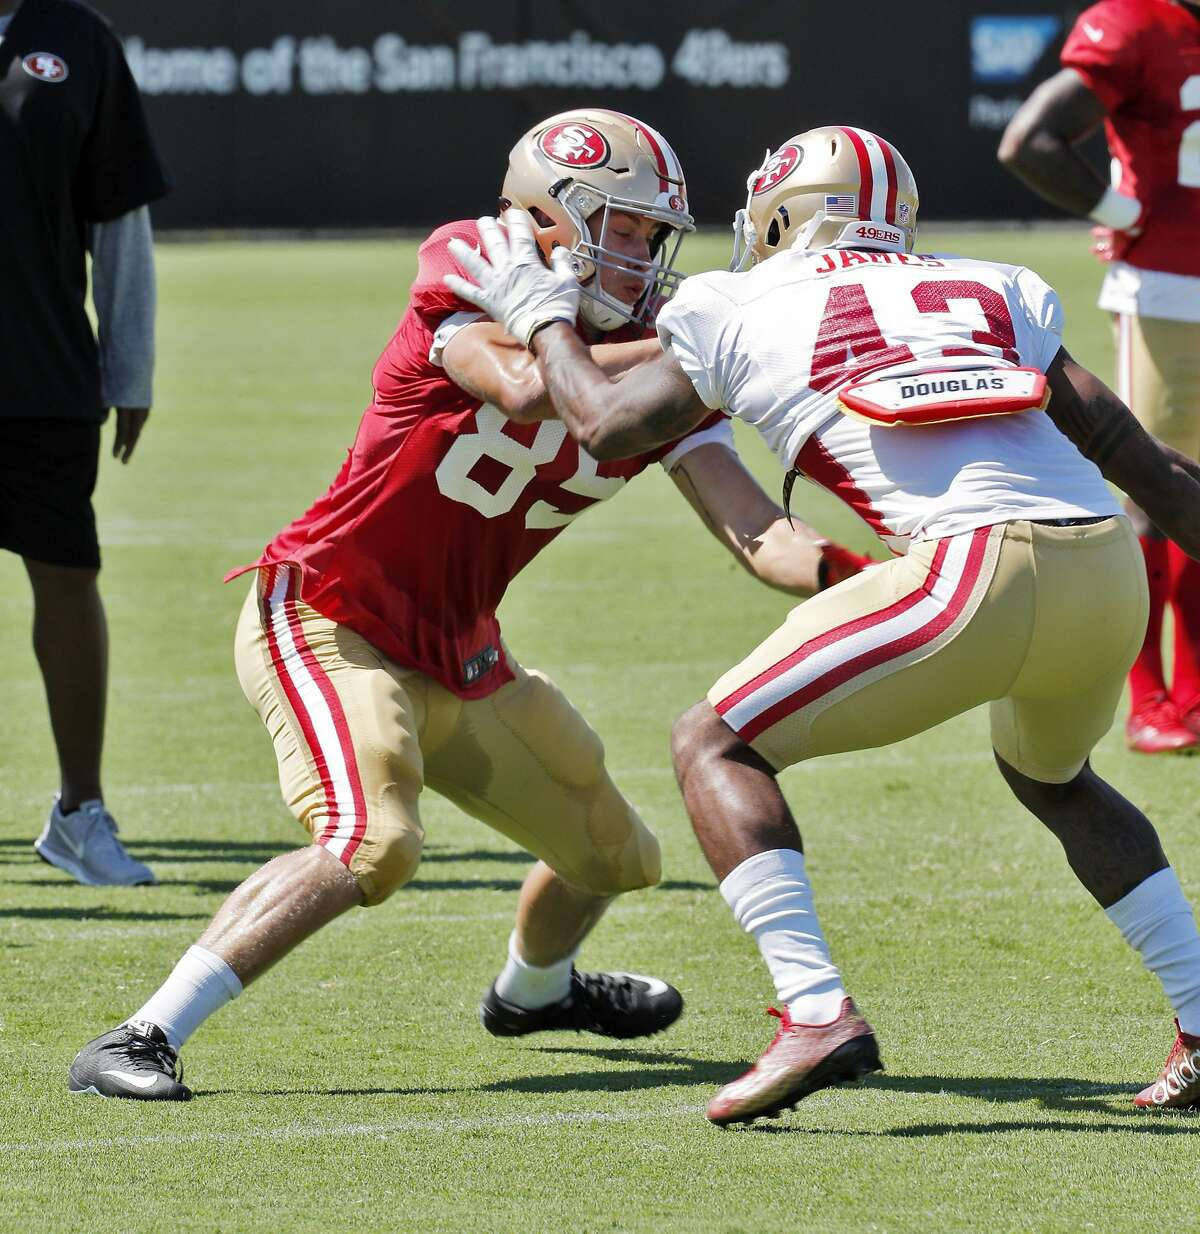 George Kittle (85) squares up against Chanceller James (43) during practice at Levi's Stadium in Santa Clara, Calif., on Sunday, July 30, 2017.